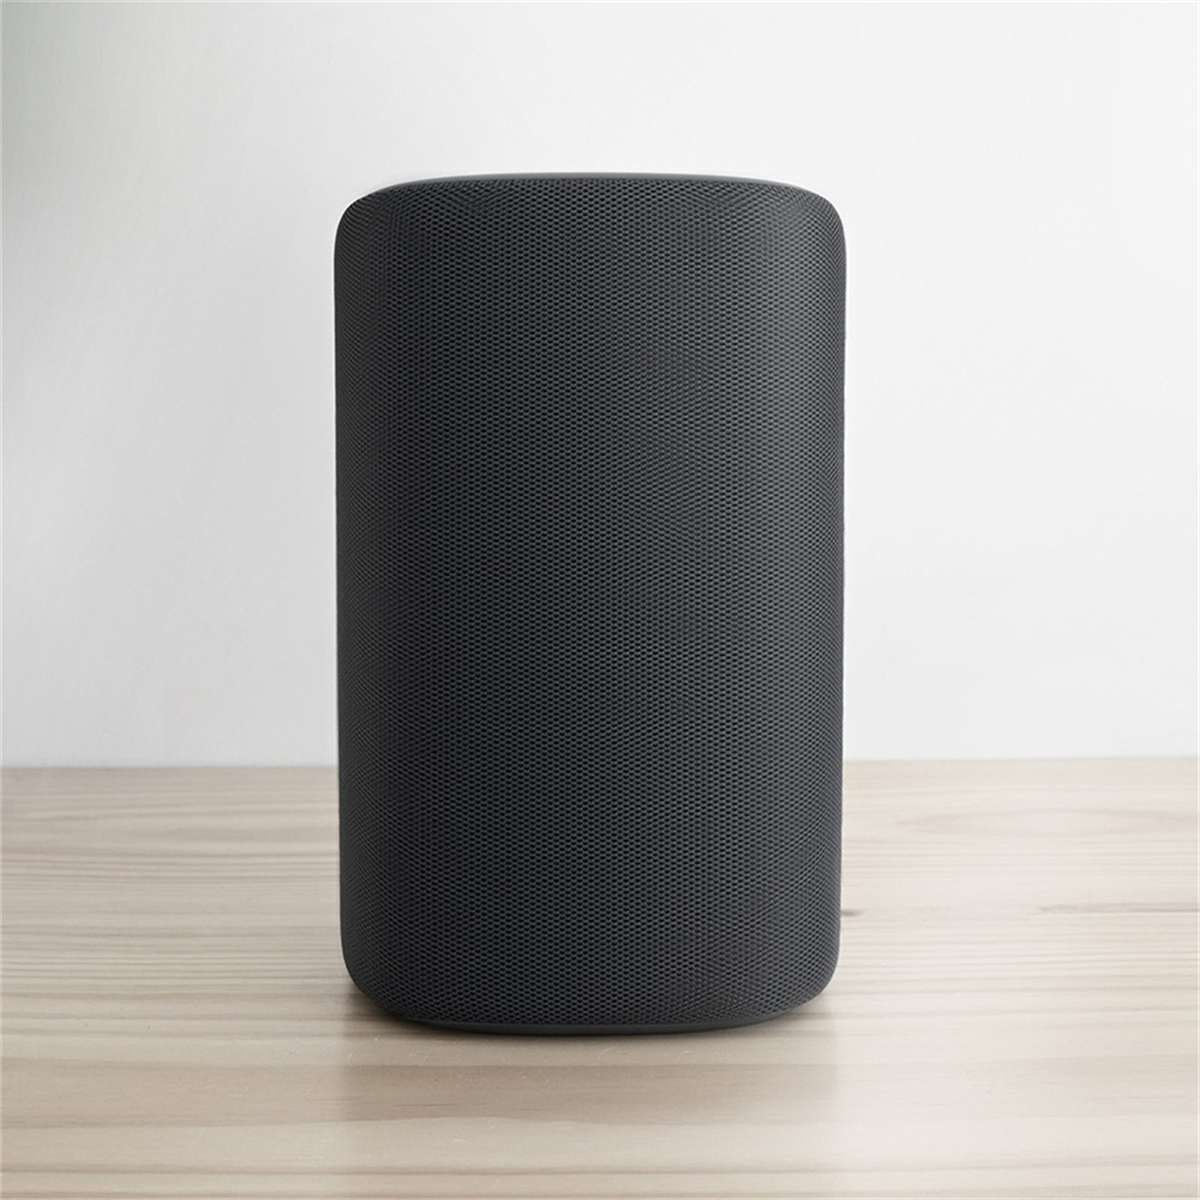 Original Xiaomi Xiaoai HD <font><b>bluetooth</b></font> Smart <font><b>Speaker</b></font> AI Bass 30W Subwoofer Music Player 360 Degree Surround Stereo Mic Subwoofer image